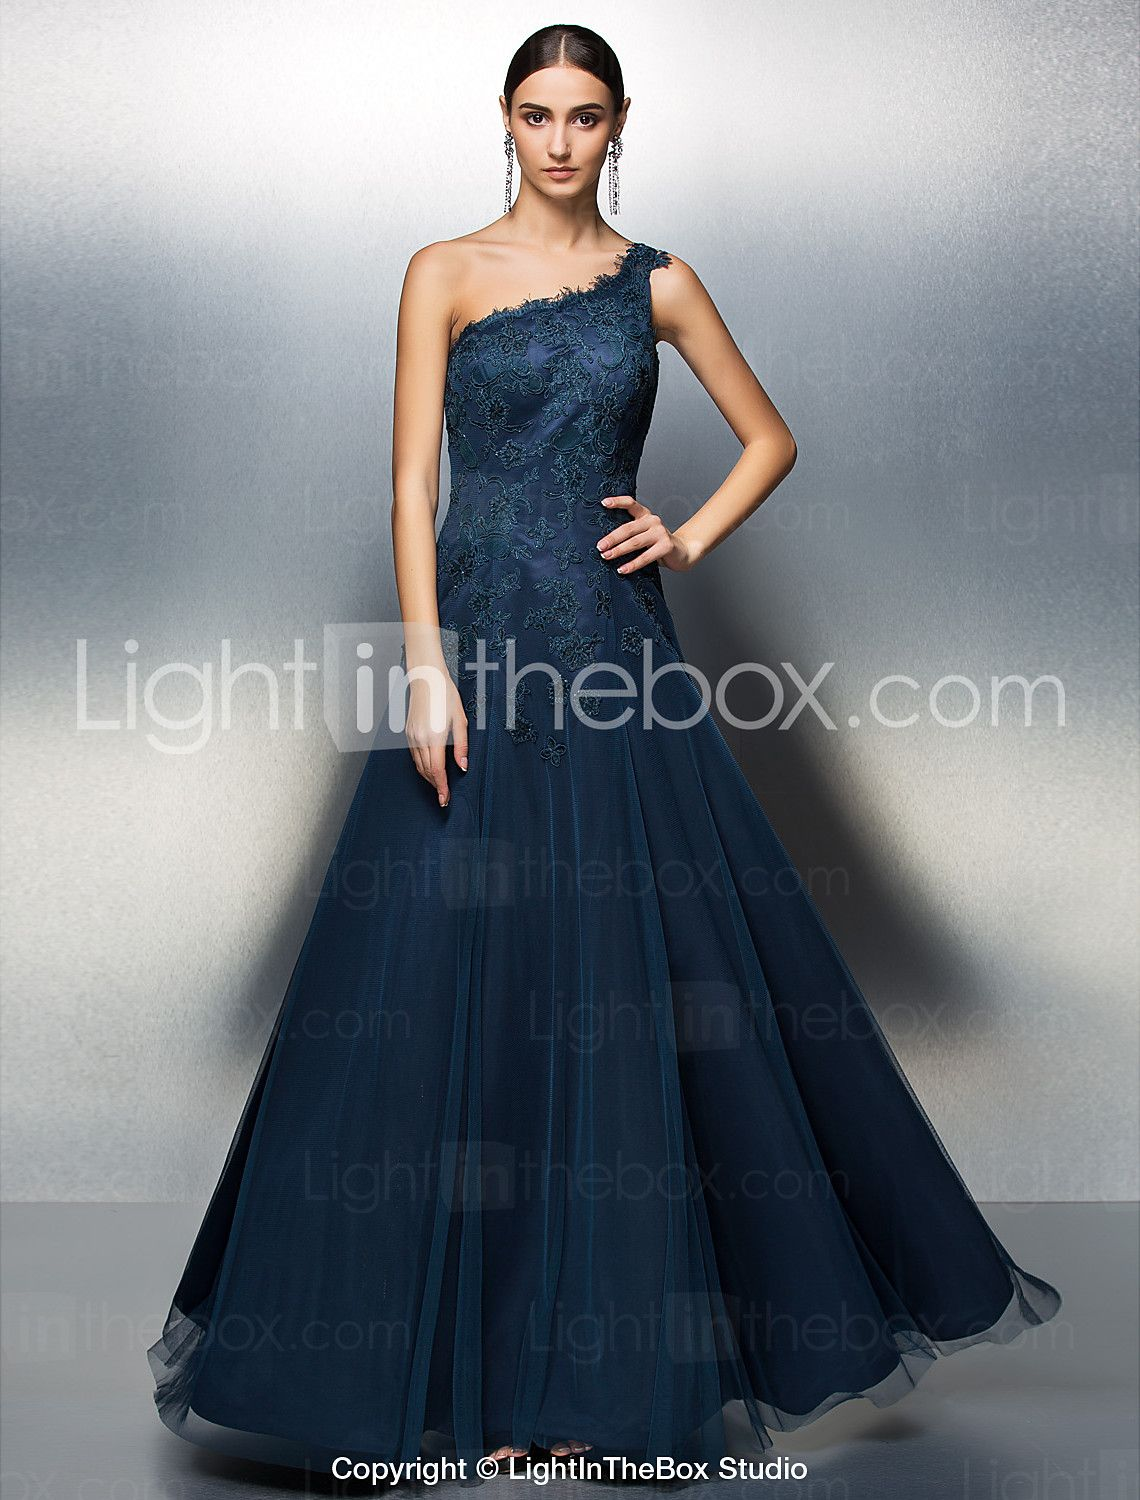 Aline one shoulder floor length tulle beaded lace cocktail party